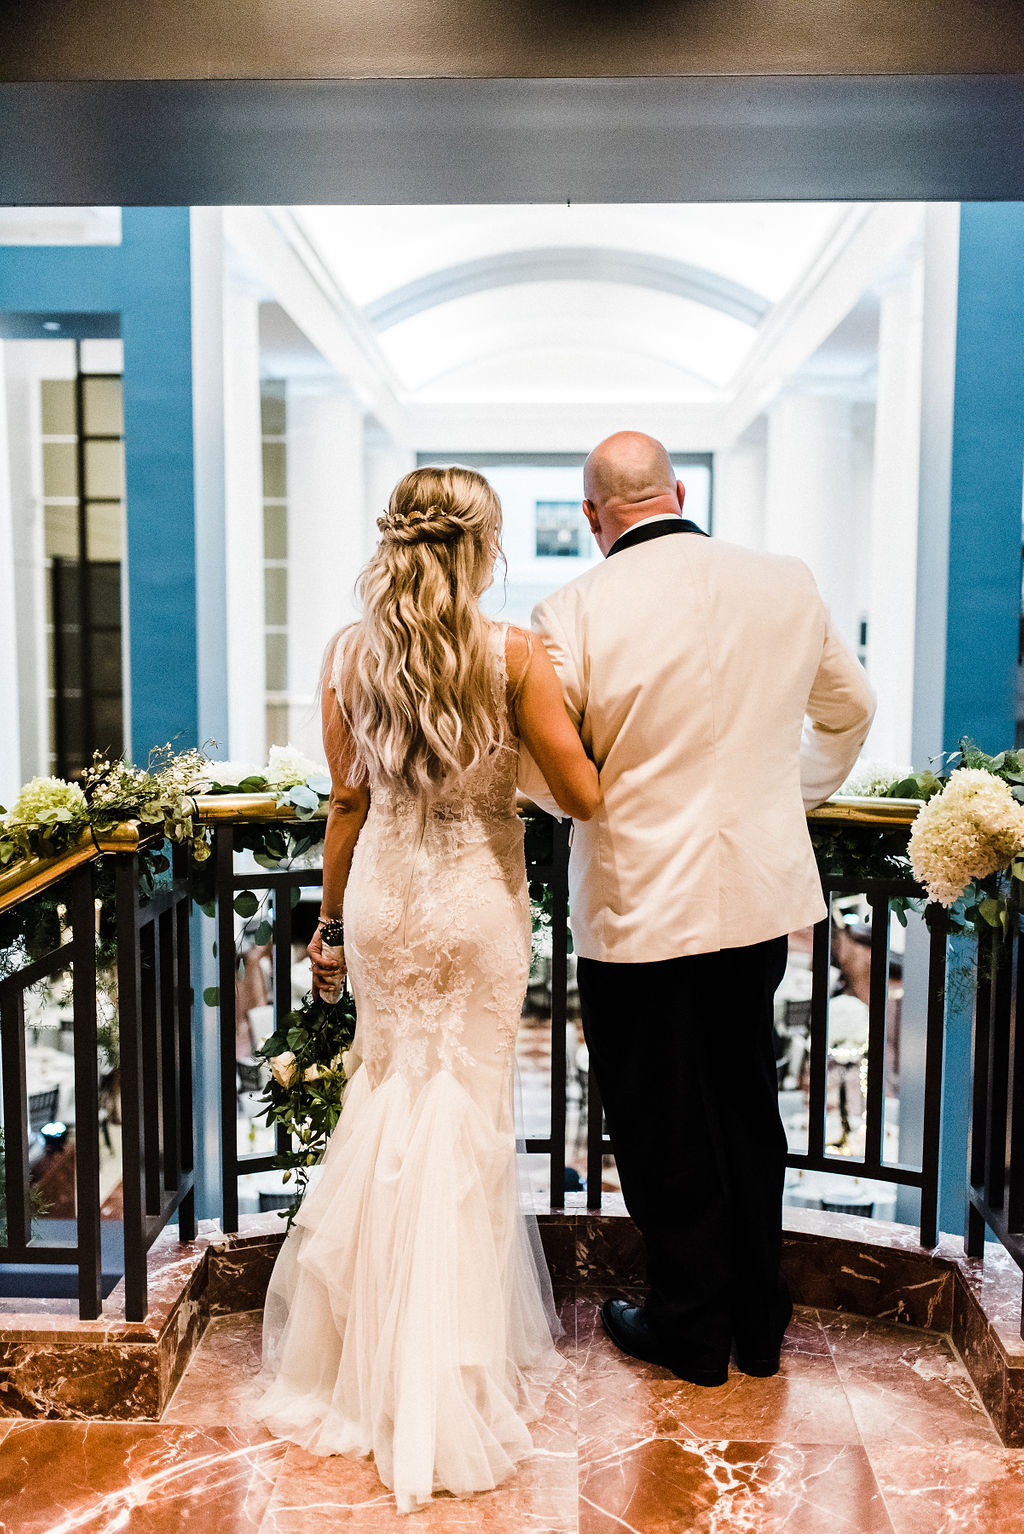 The first moment the bride and groom see into the ballroom of their wedding - Pearl Weddings & Events